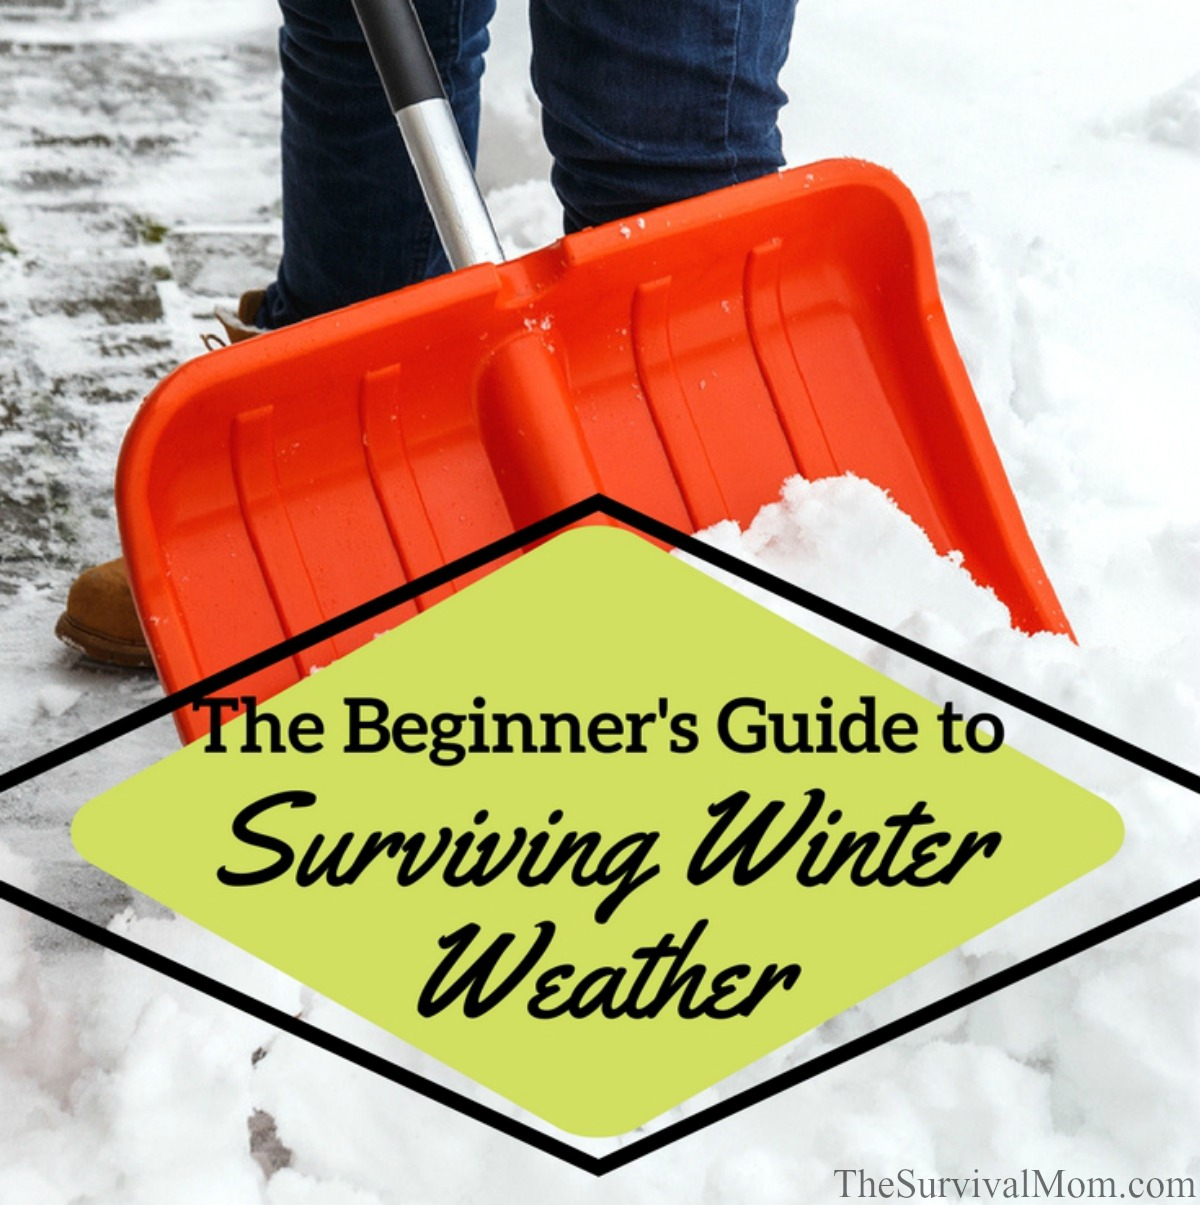 The Beginner's Guide to Surviving Winter Weather via The Survival Mom